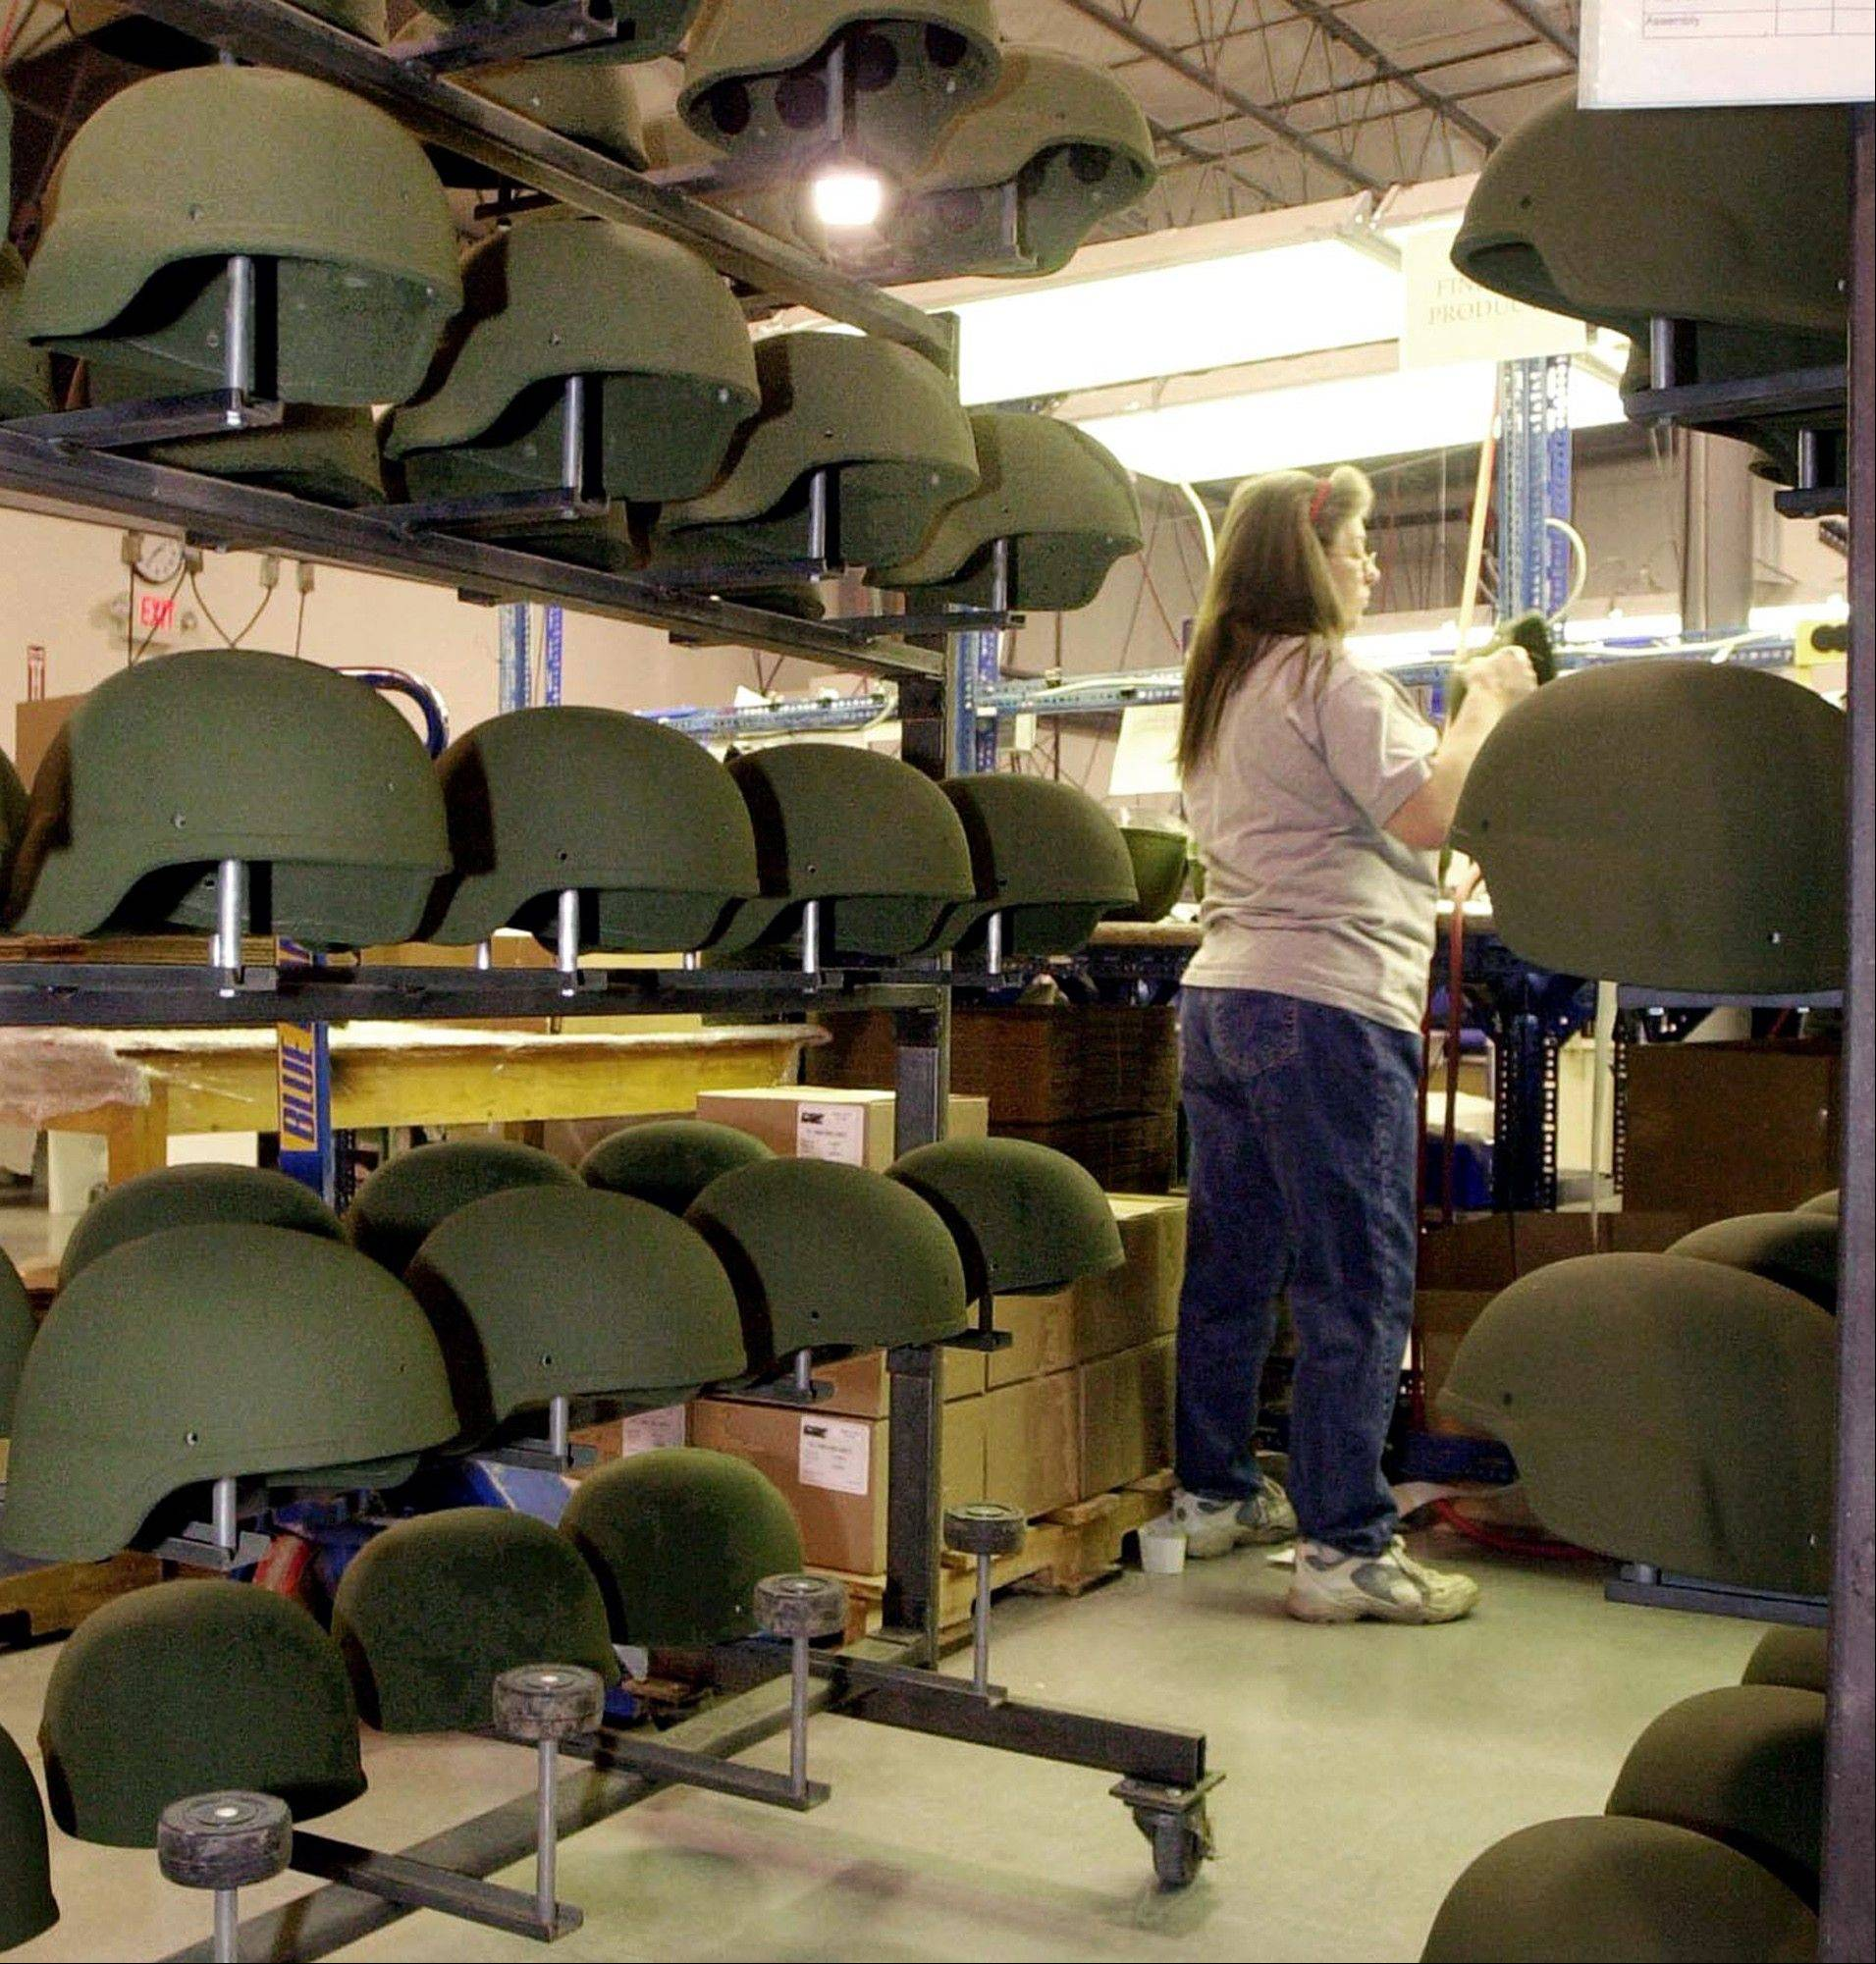 A rack of military helmets awaits final preparation at the Revision Military plant in Newport, Vt. The Vermont plant that makes helmets for the U.S. military has laid off half its workforce because of uncertainty created by the federal budget impasse. Revision Military cut the number of workers at its Newport plant at the beginning of the federal government shutdown last week.